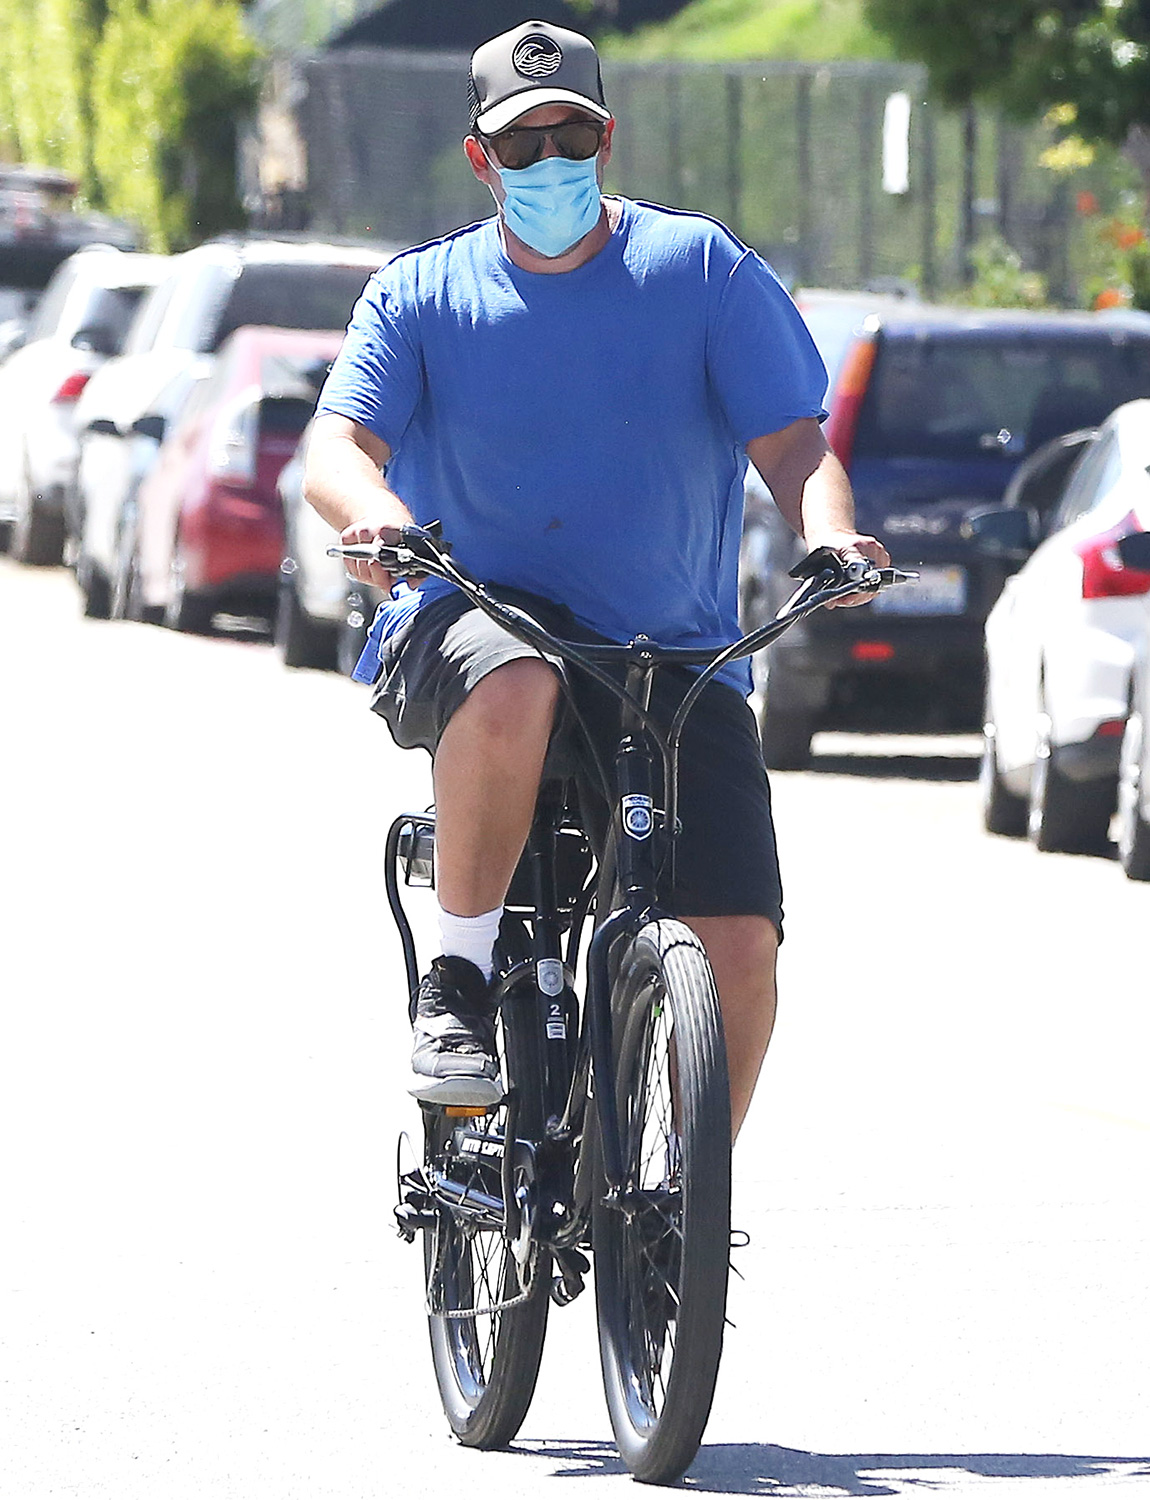 Adam Sandler rides his bike with no mask then goes back home and comes out with a mask on. 05 May 2020